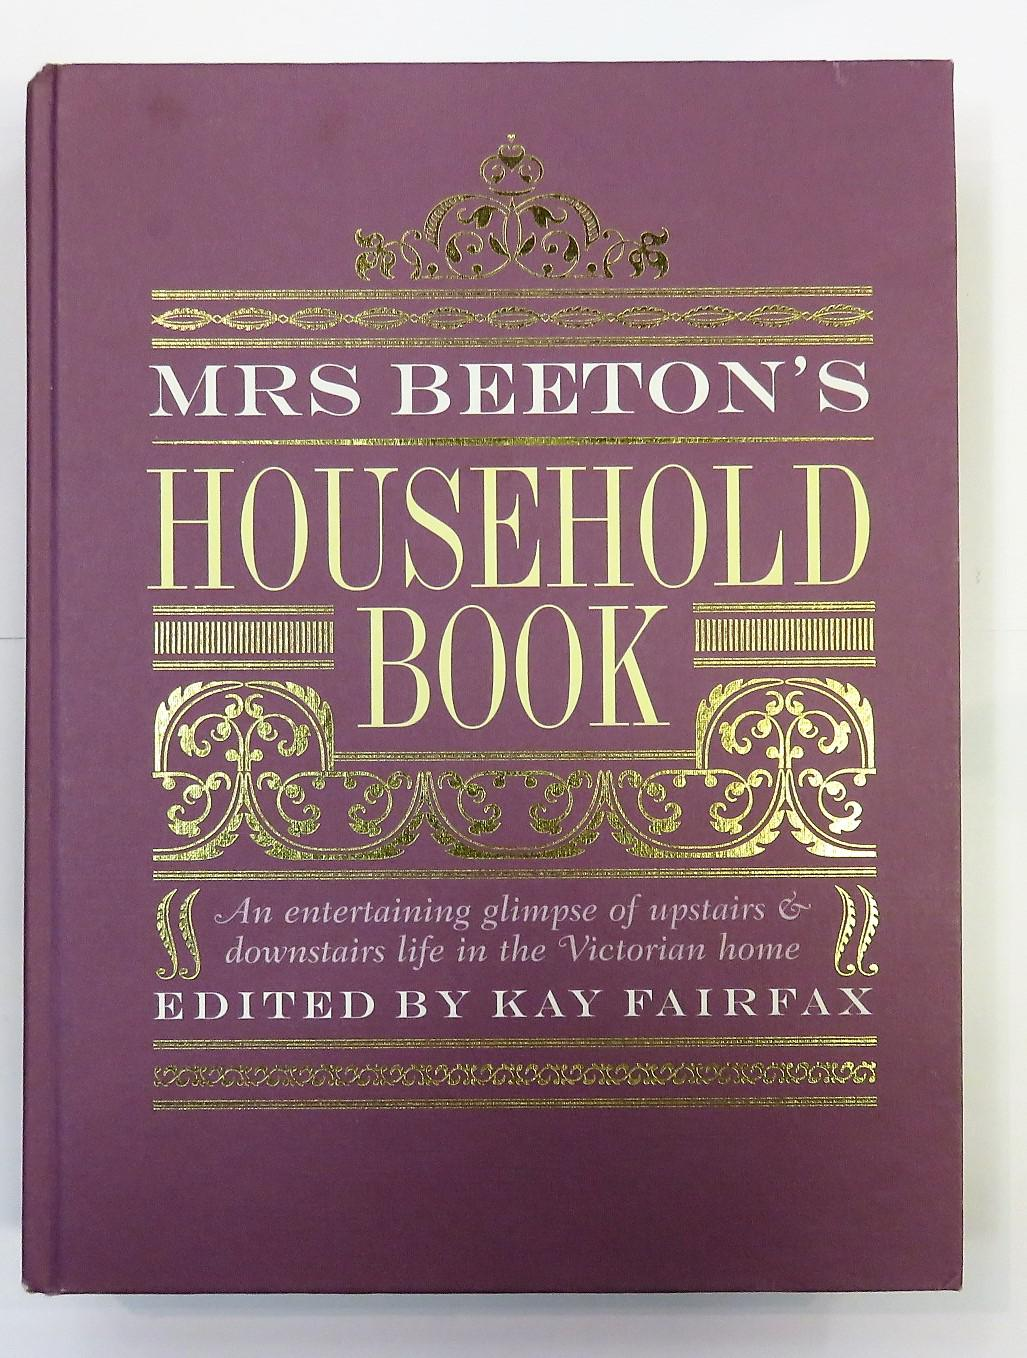 Mrs Beeton's Household Book